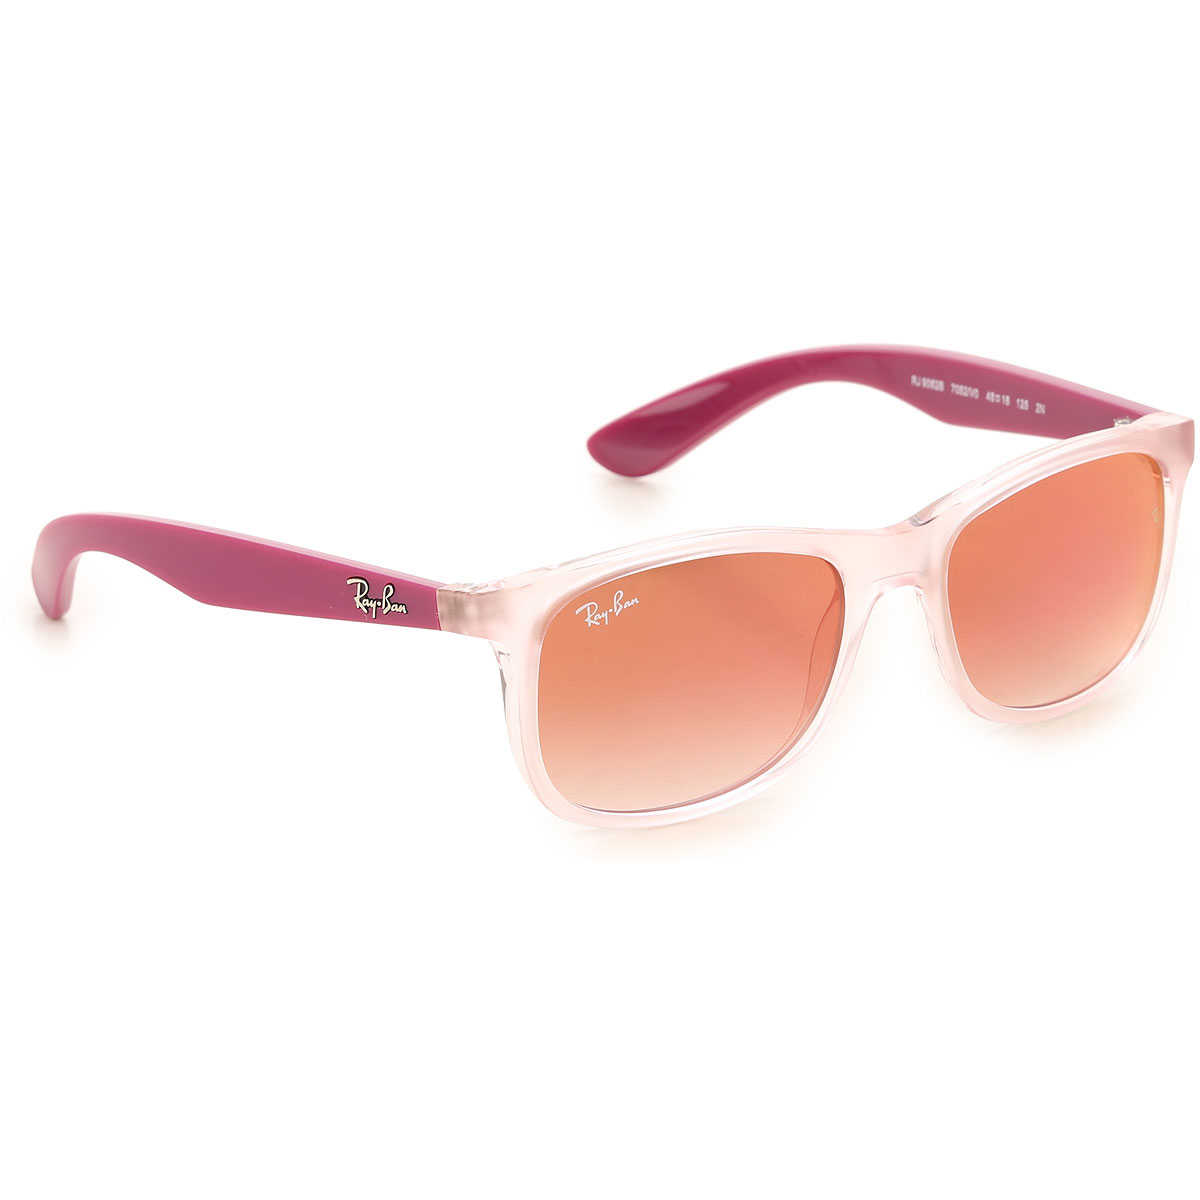 Ray Ban Junior Kids Sunglasses for Girls Violet USA - GOOFASH